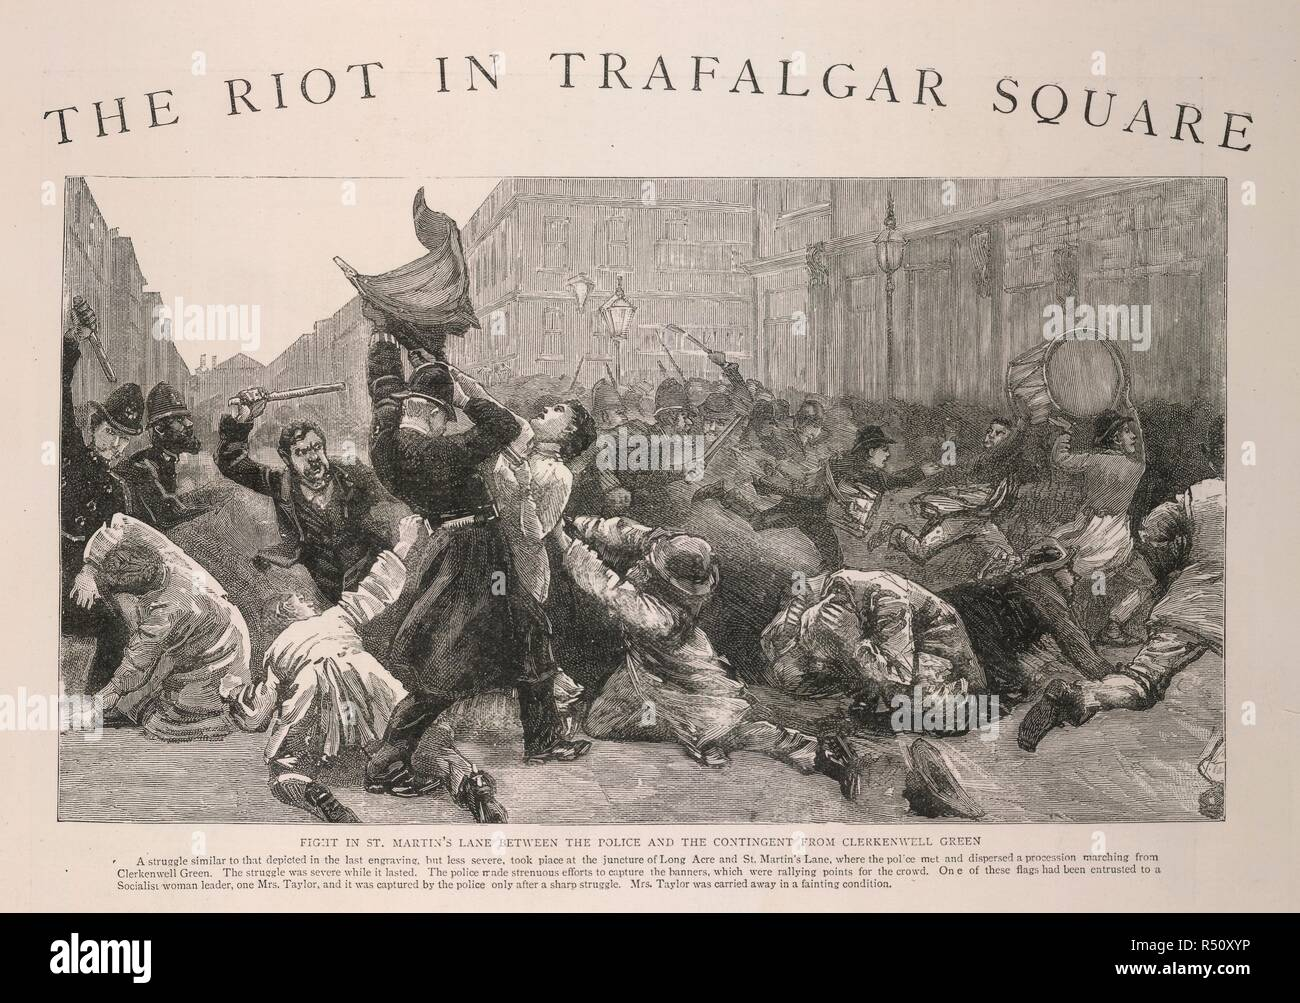 The Riot in Trafalgar Square. The Social Democratic Federation (SDF) organised a meeting for 13th February, 1887 in Trafalgar Square to protest against the policies of the Conservative Government. . The Graphic 19 November 1887. England. newspaper illustration, engraving of events of 1887, with police in conflict with protesters. Source: Graphic 19/11/1887 p573 (det). Language: English. - Stock Image